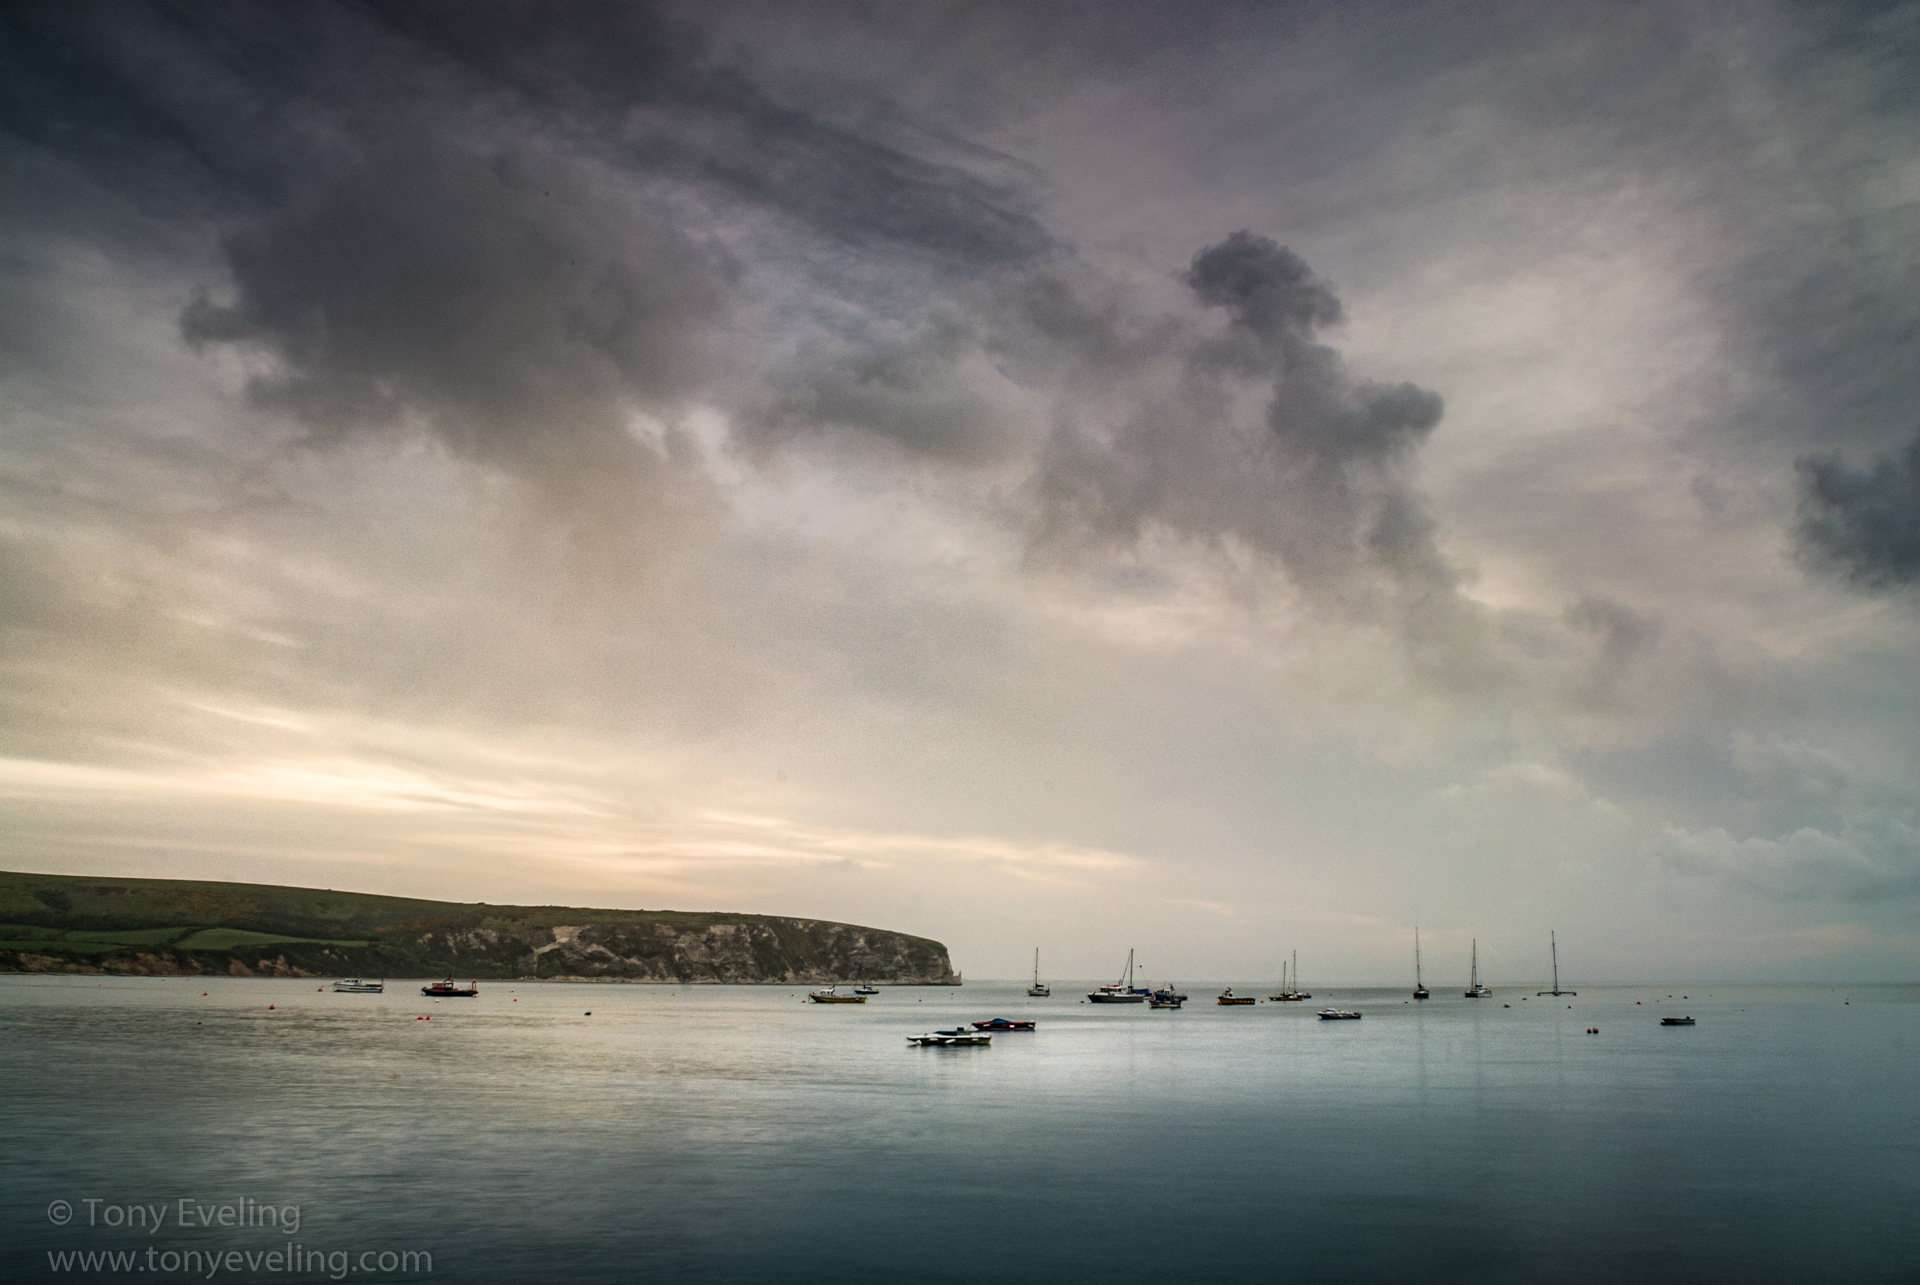 Tranquil dawn scene at Swanage Bay, Swanage, Dorset